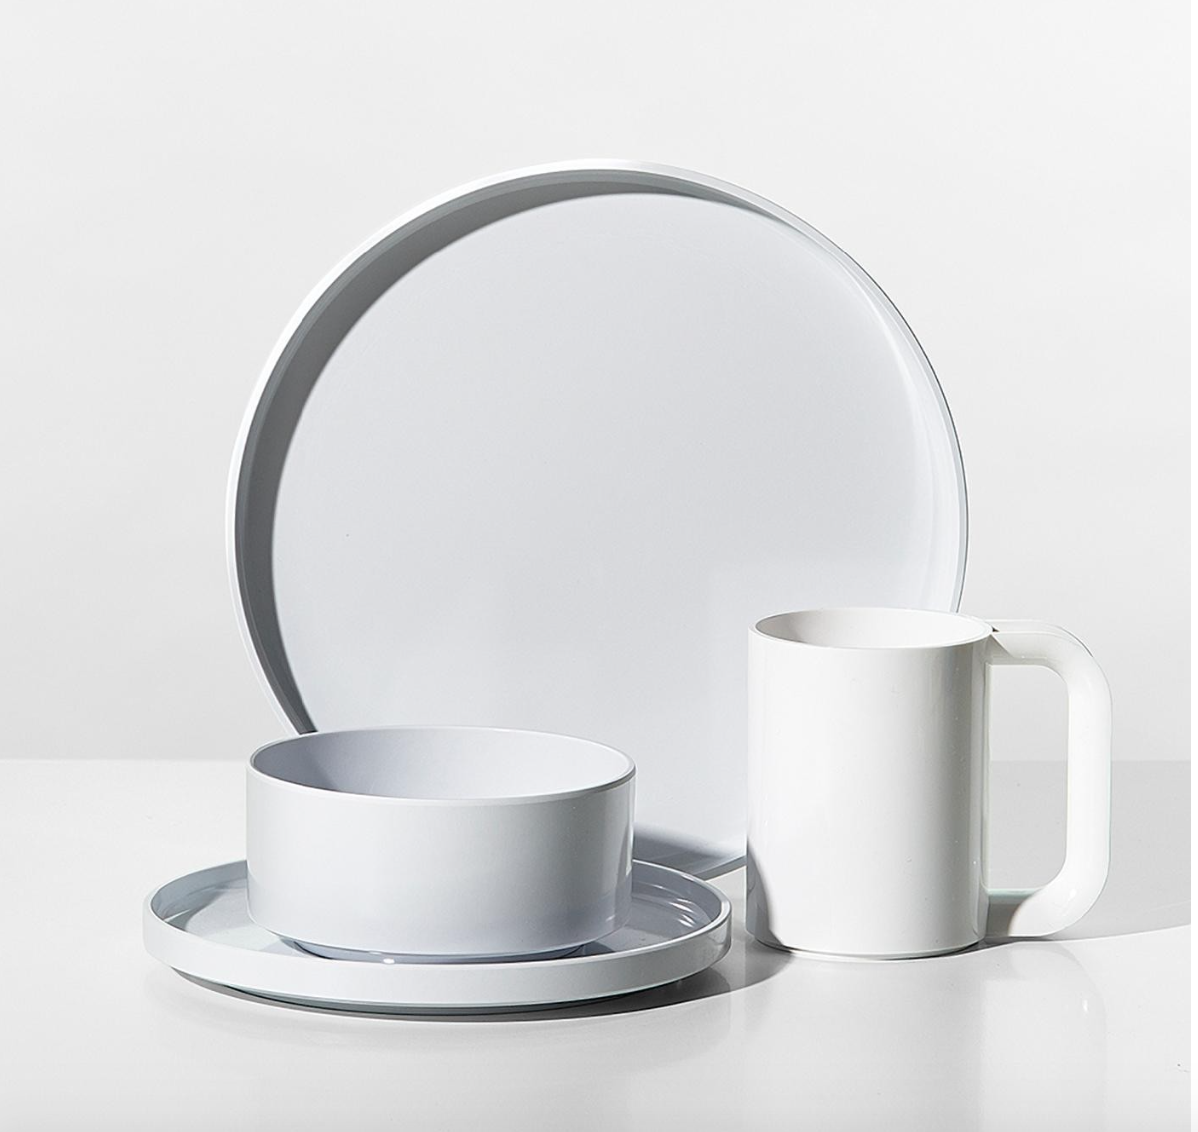 Heller white melamine dinnerware designed by Massimo and Lella Vignelli in 1964.